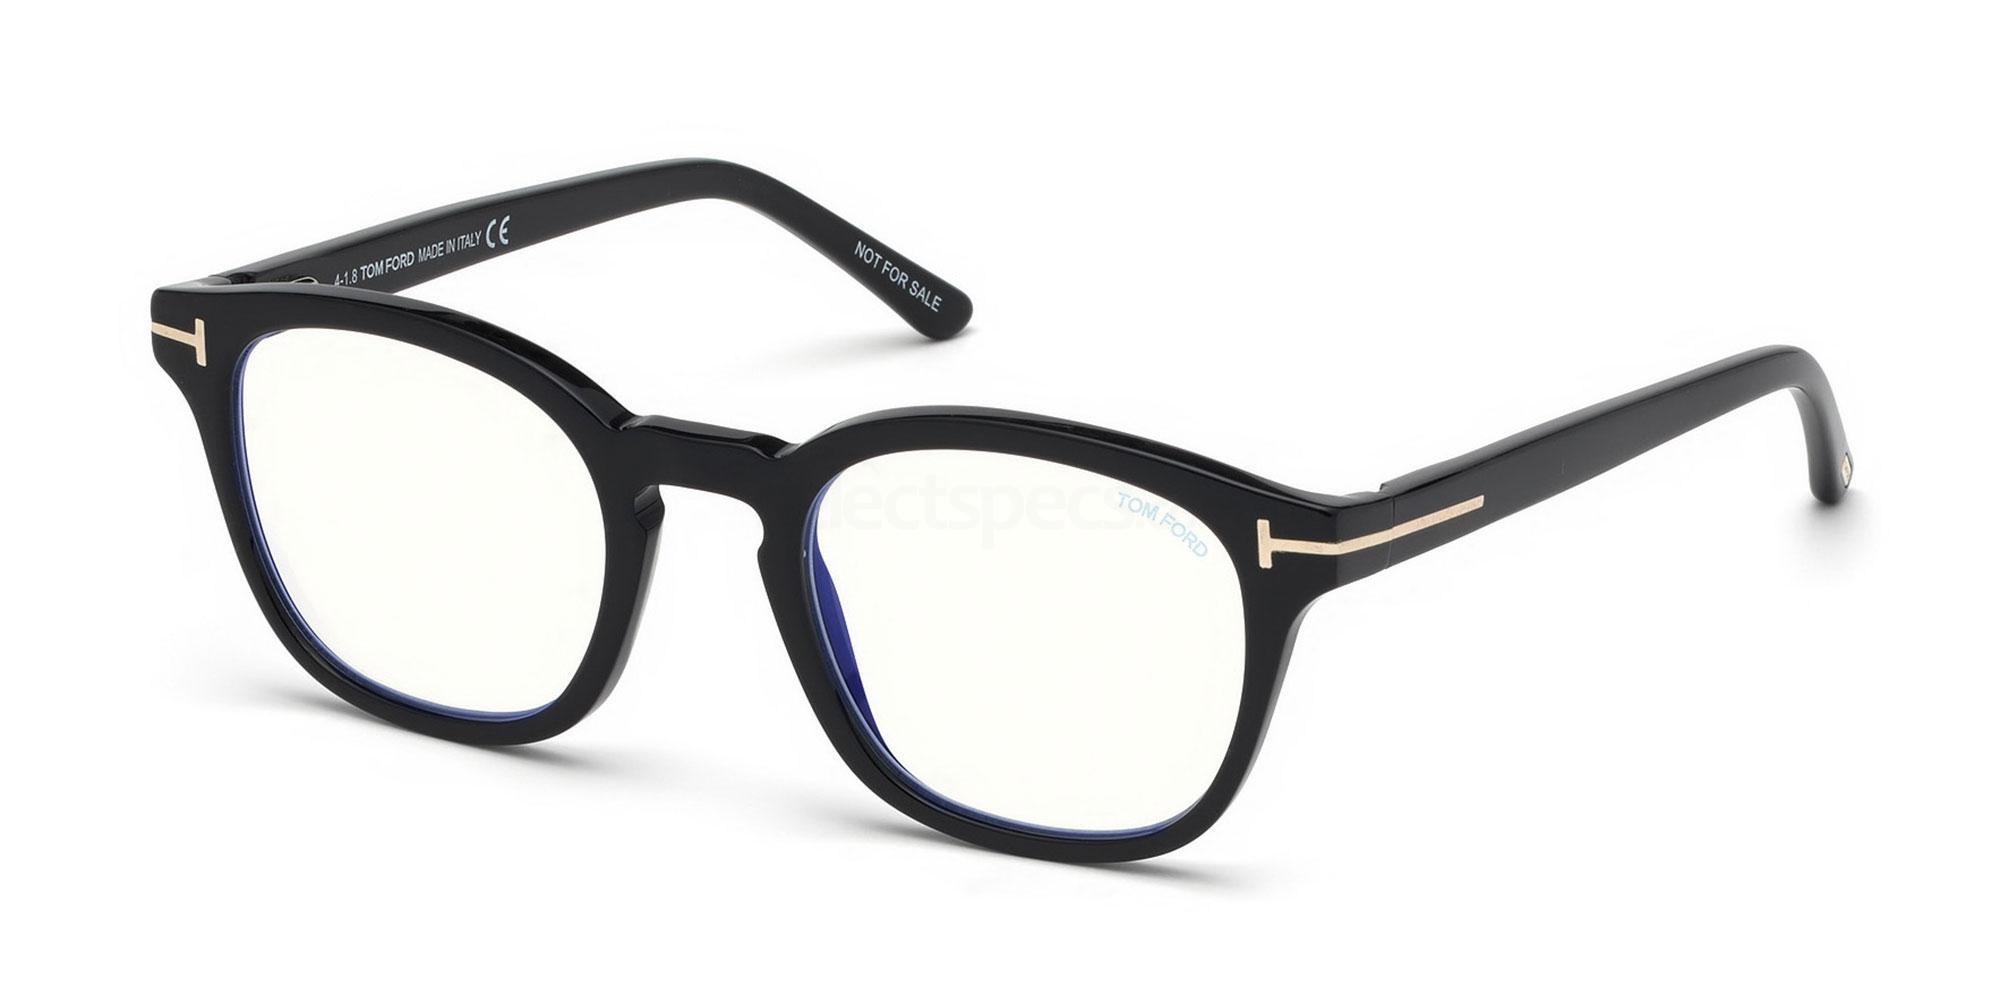 01V FT5532-B Glasses, Tom Ford